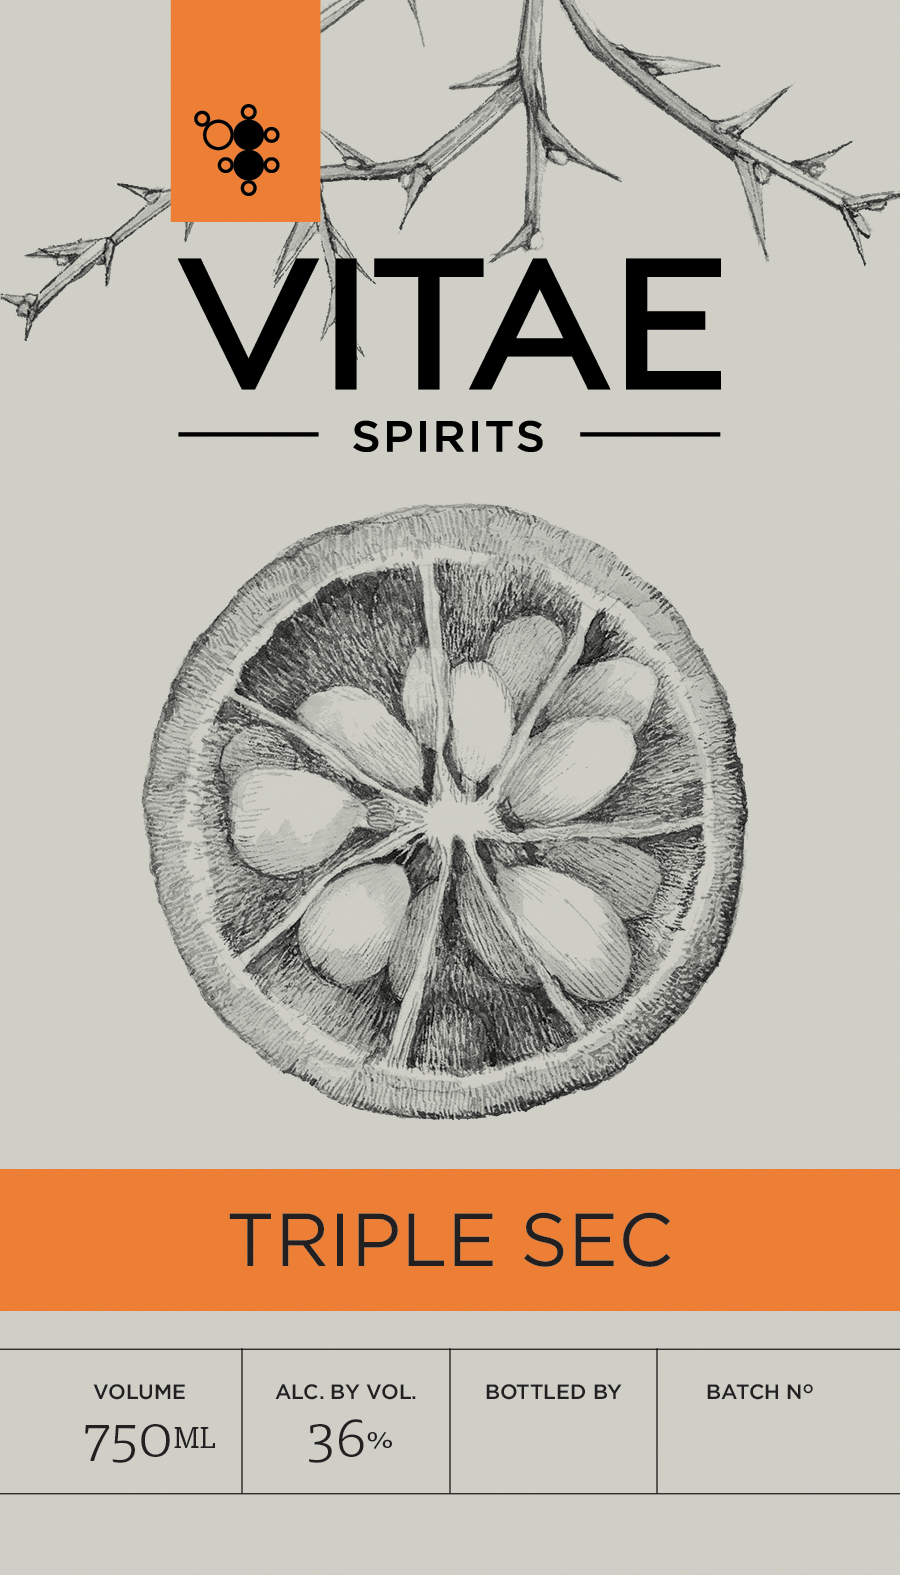 Label-TripleSec.jpg